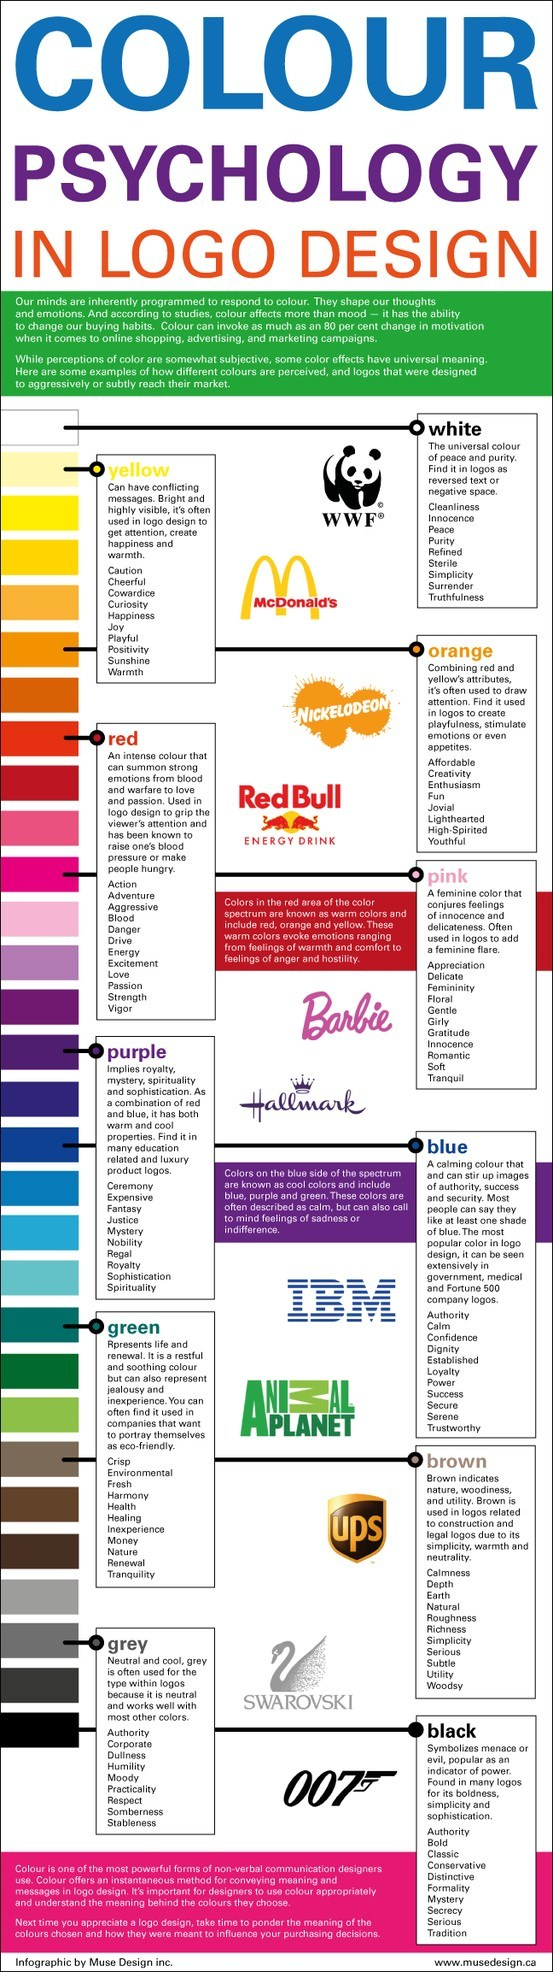 Colour-Psychology-in-Logo-Design